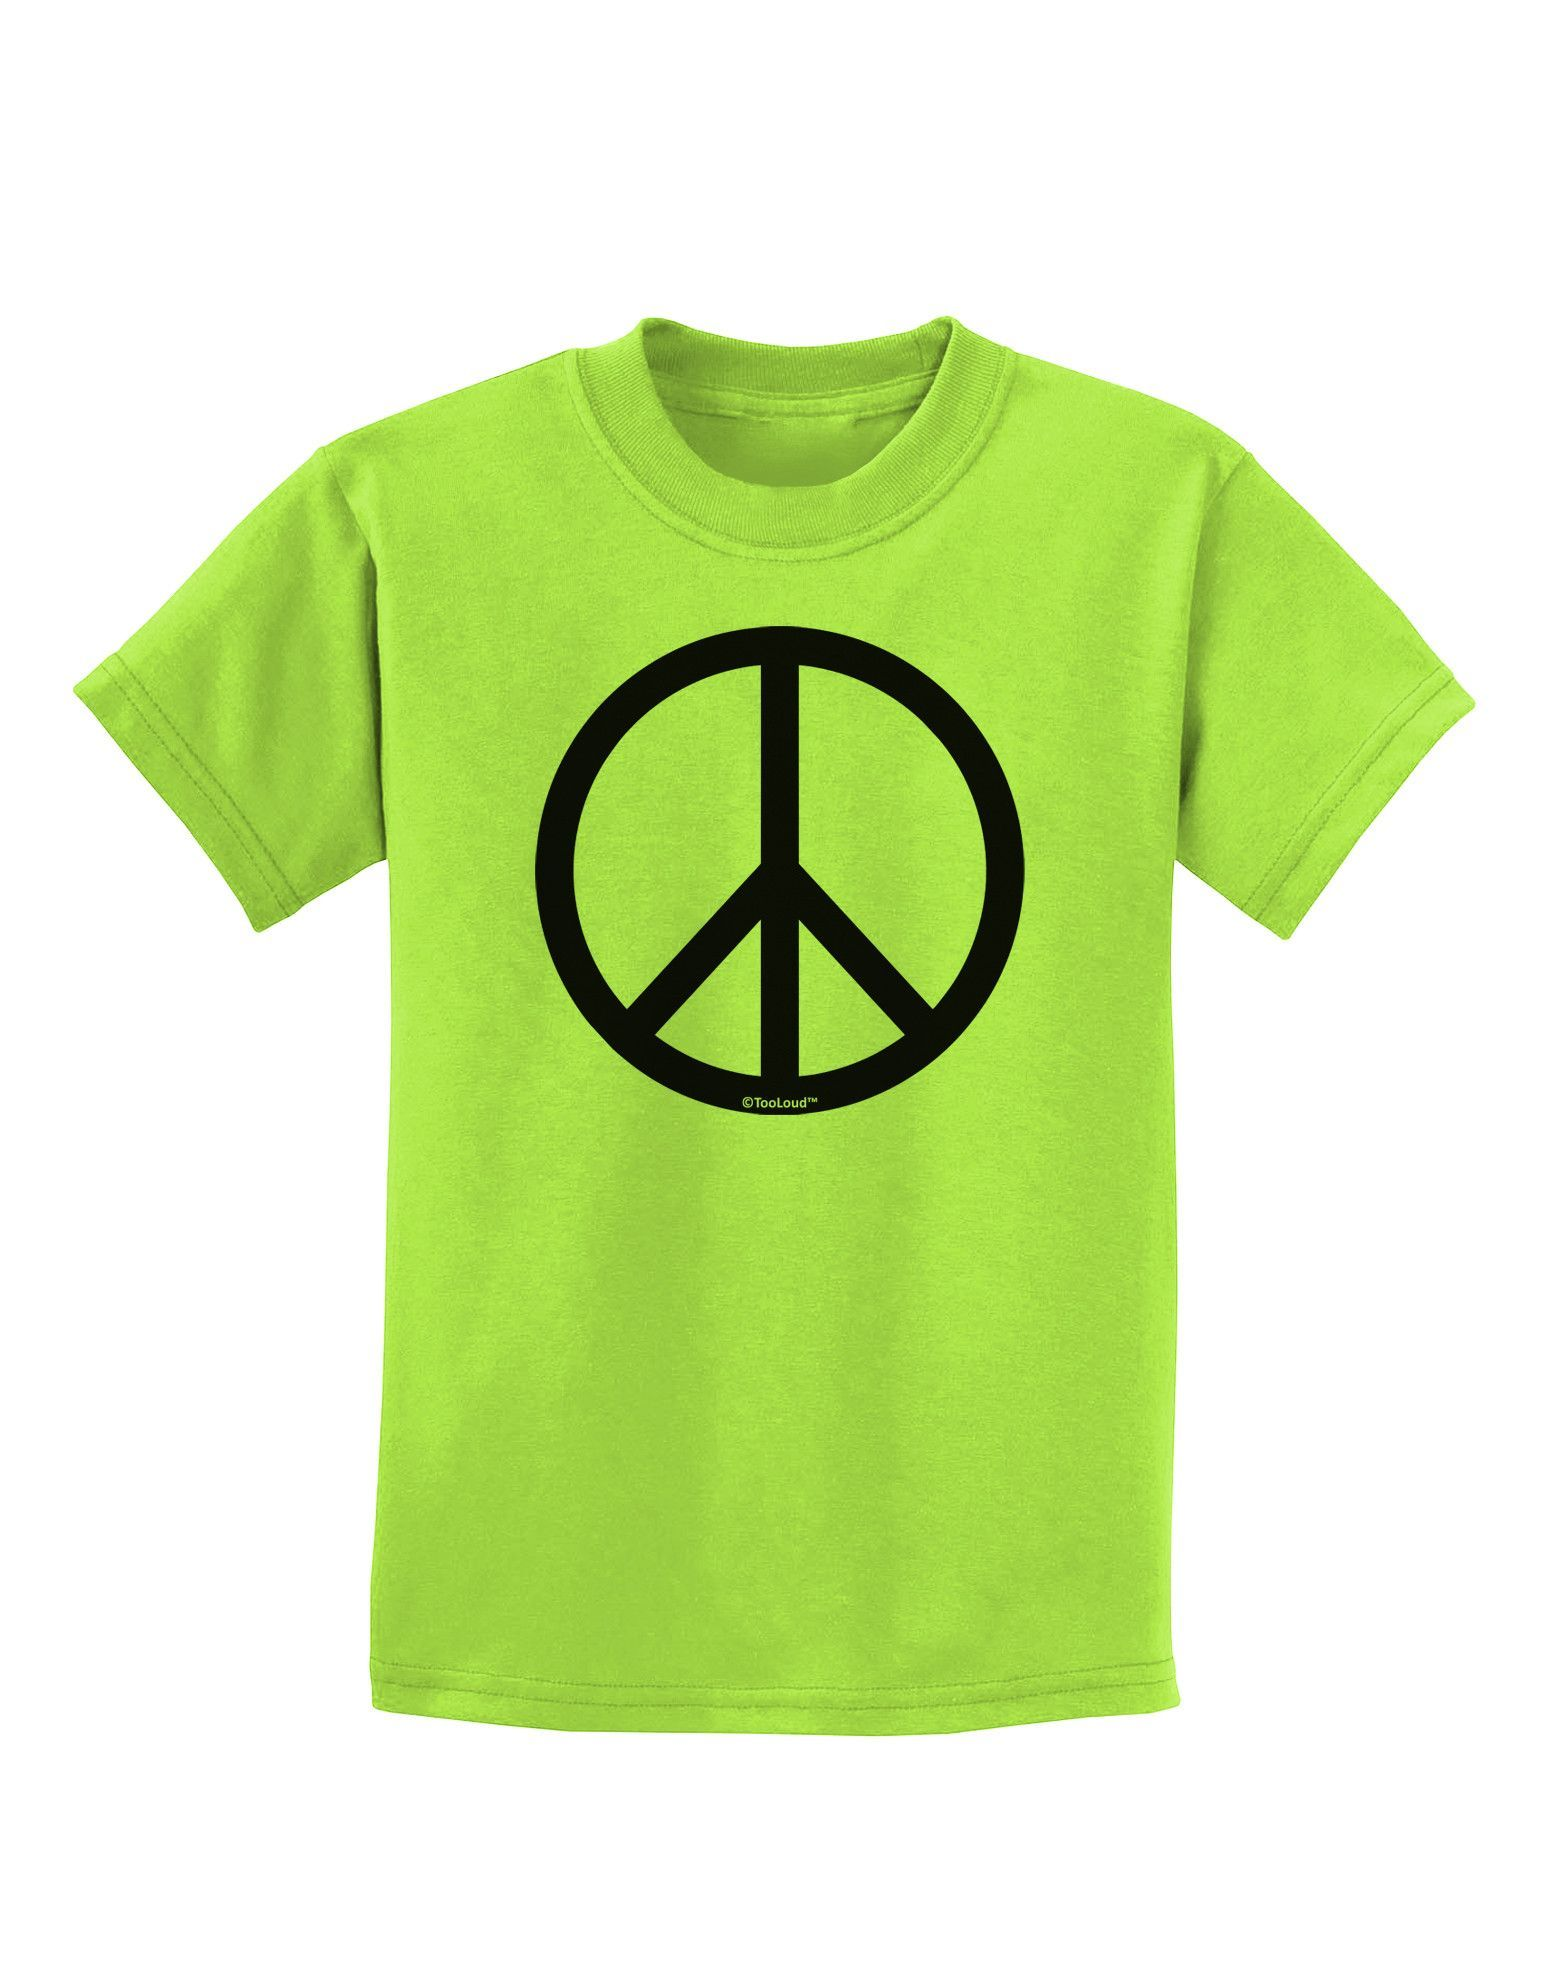 TooLoud Peace Sign Symbol Childrens T-Shirt